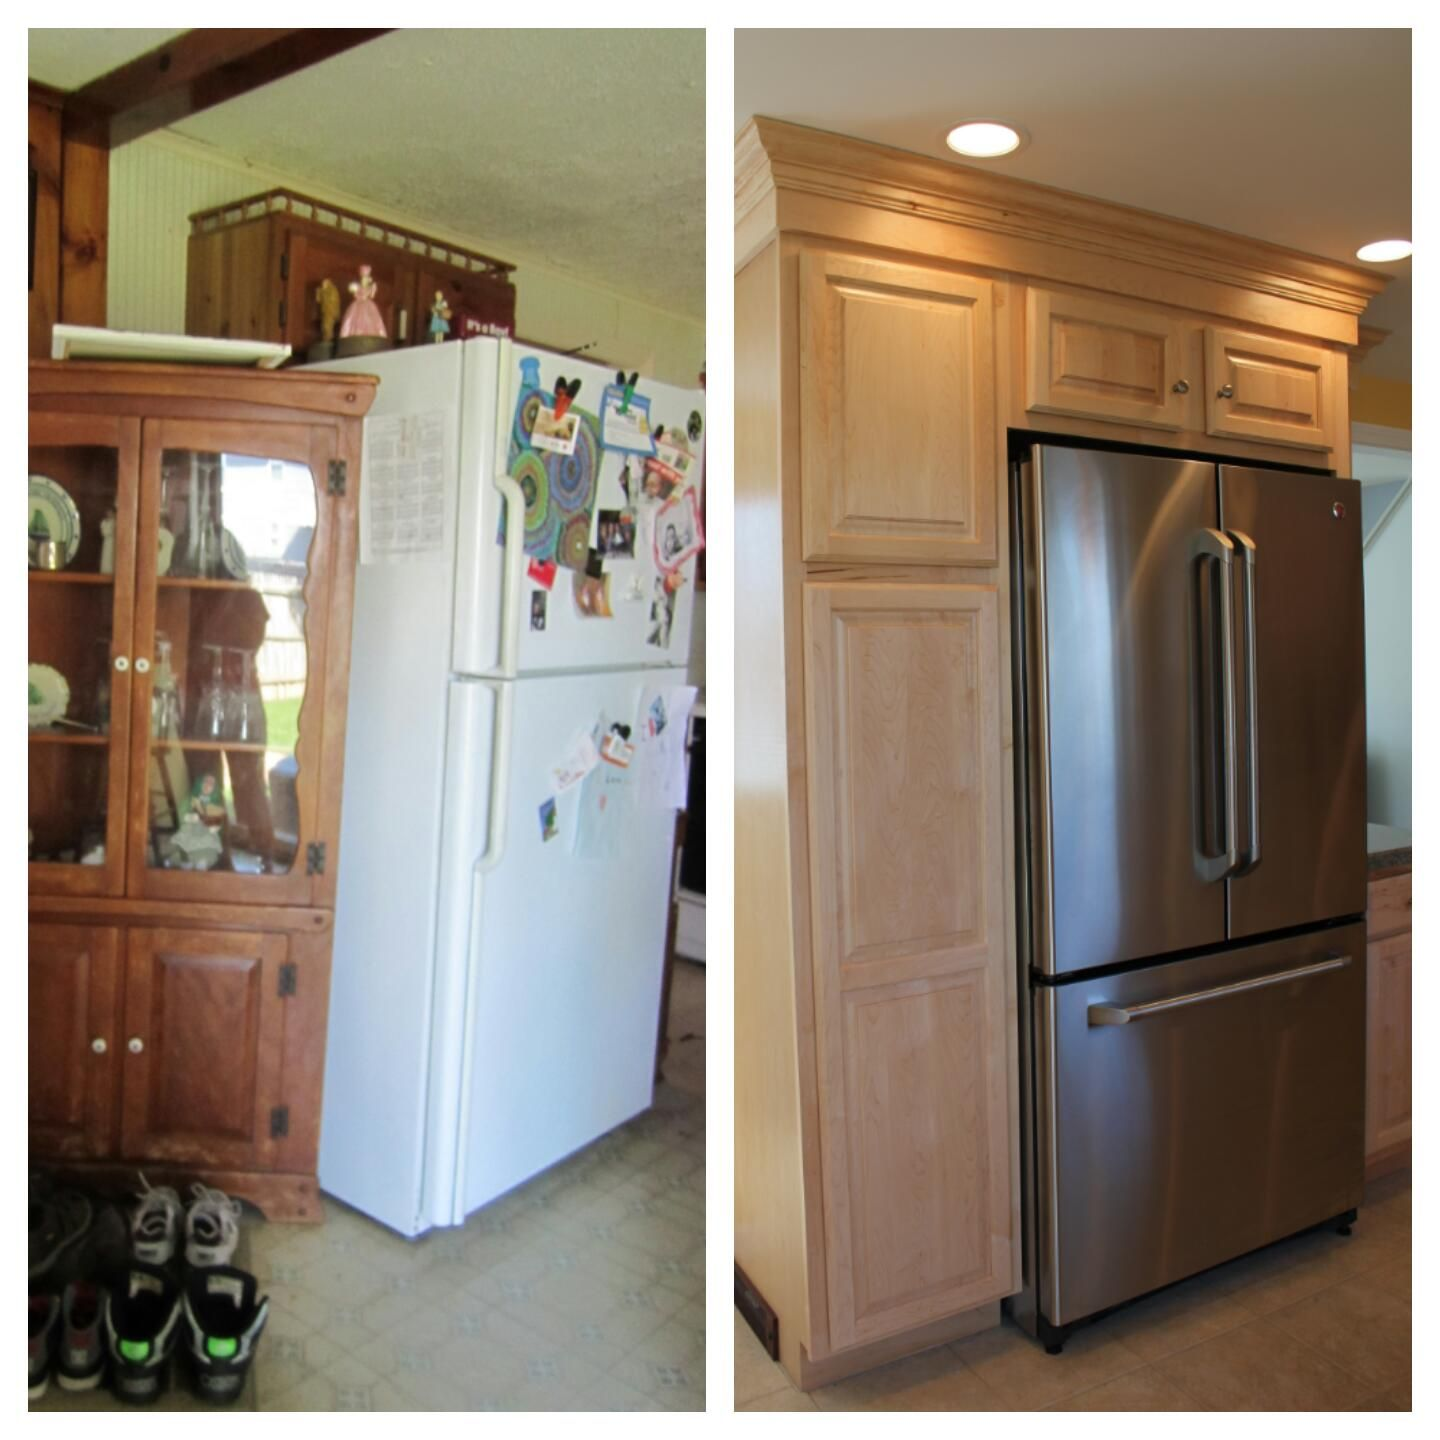 By Adding The Cabinets Around The Refrigerator Added More